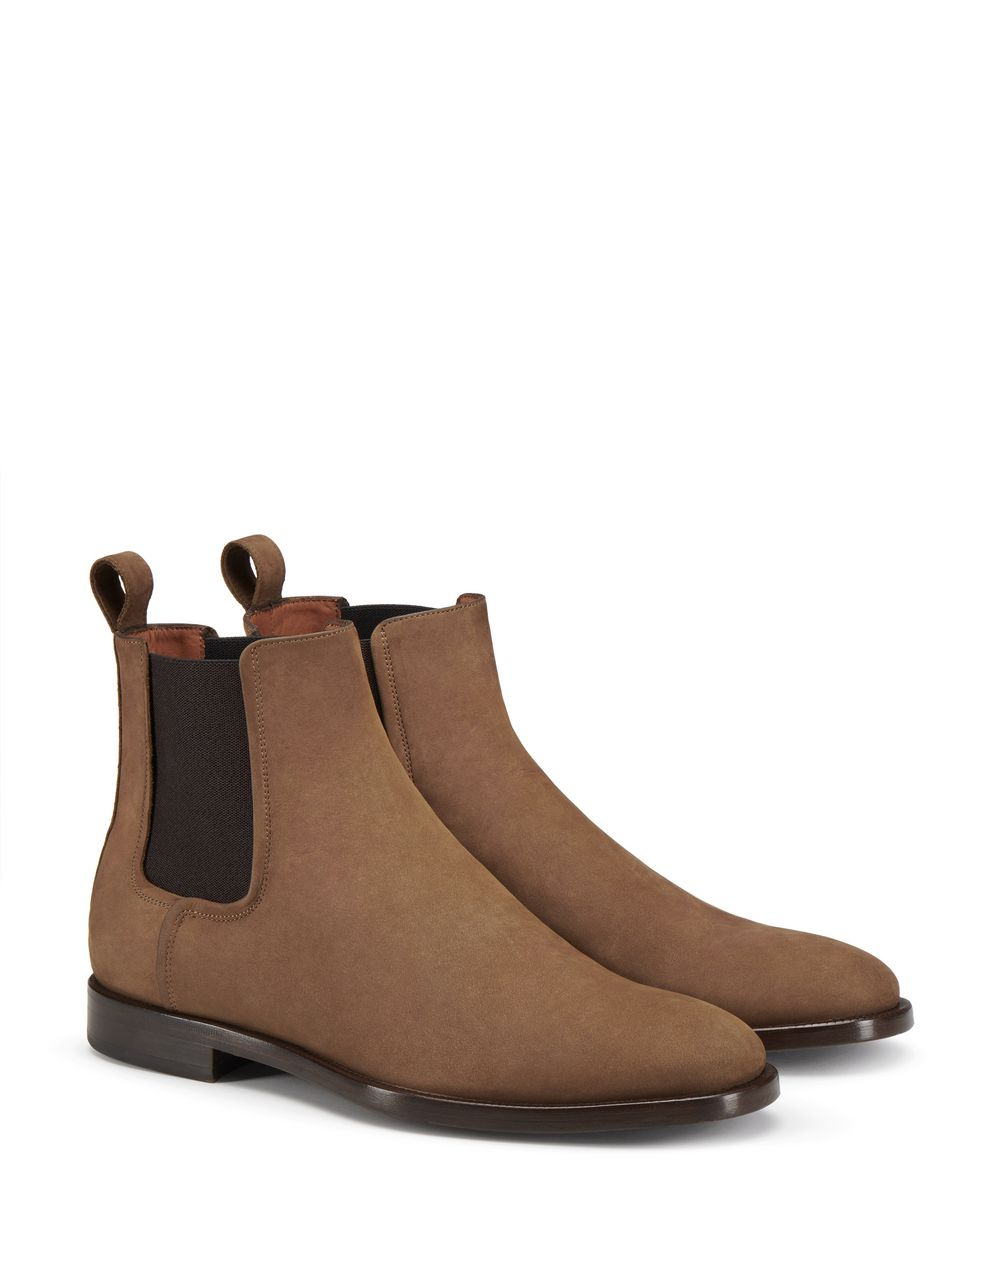 BROWN NUBUCK CHELSEA BOOT - Lanvin